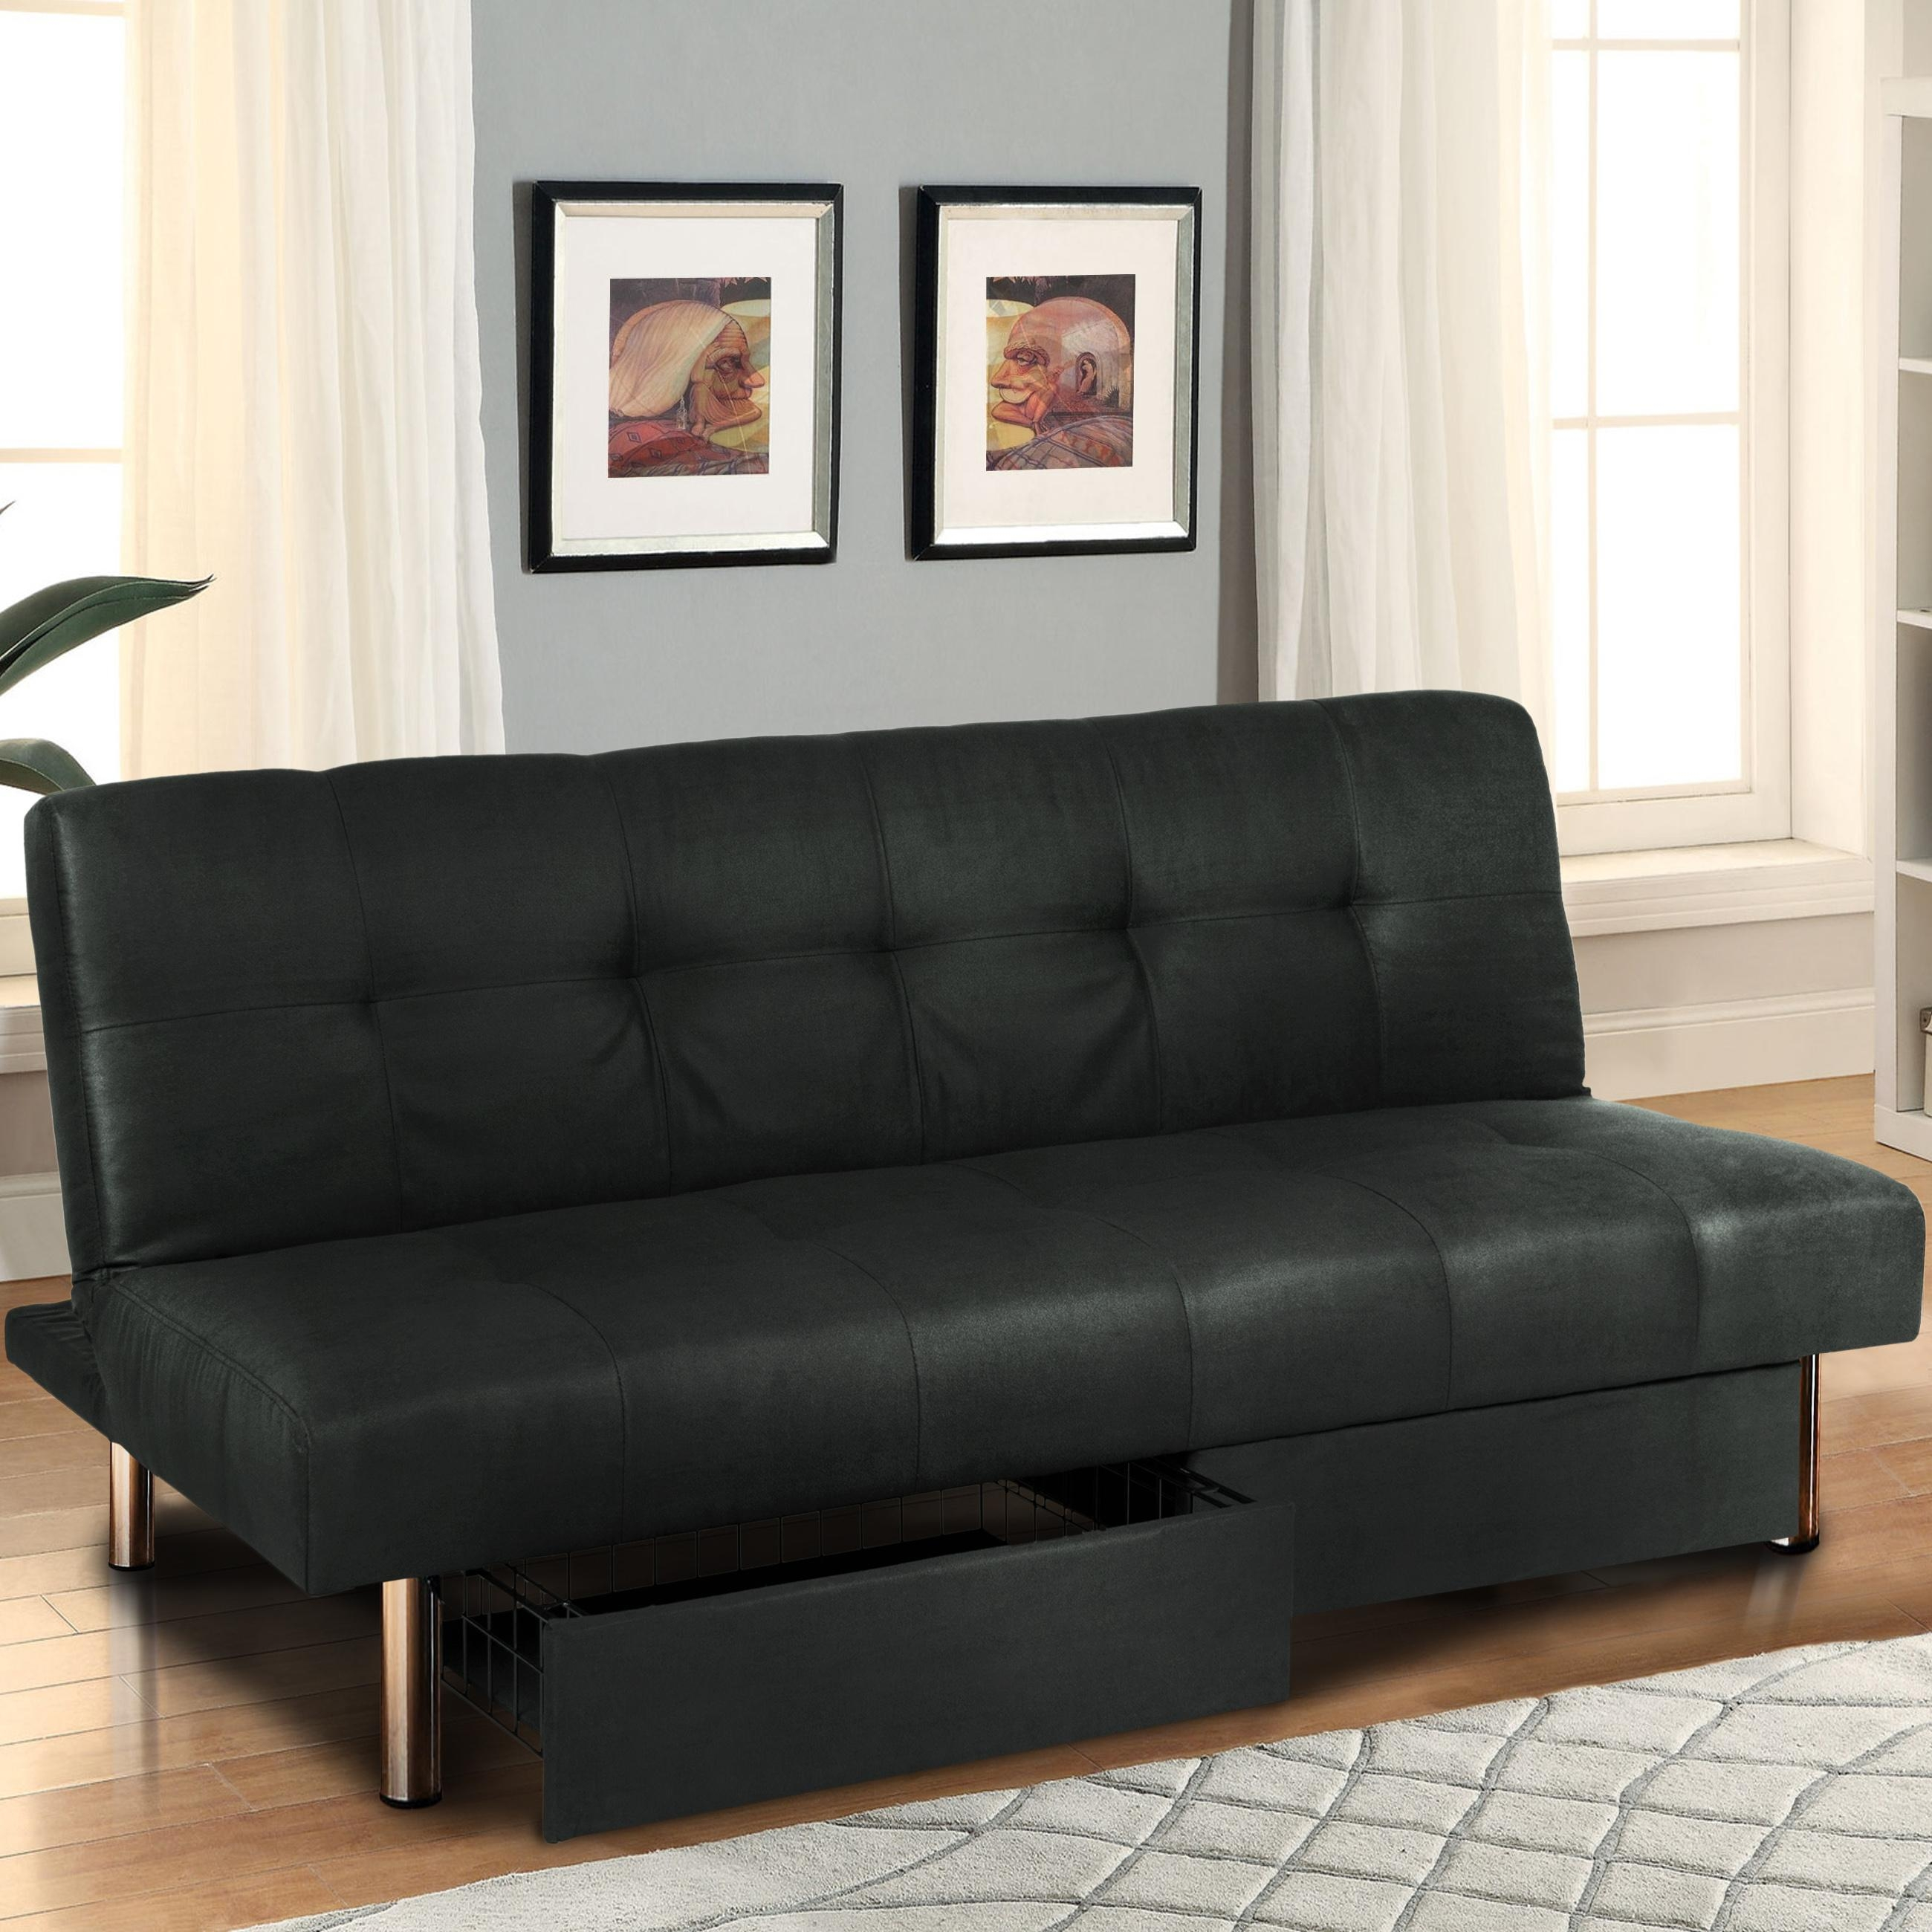 Microfiber Futon Folding Sofa Bed Couch Mattress & Storage With Futon Couch Beds (Image 17 of 20)